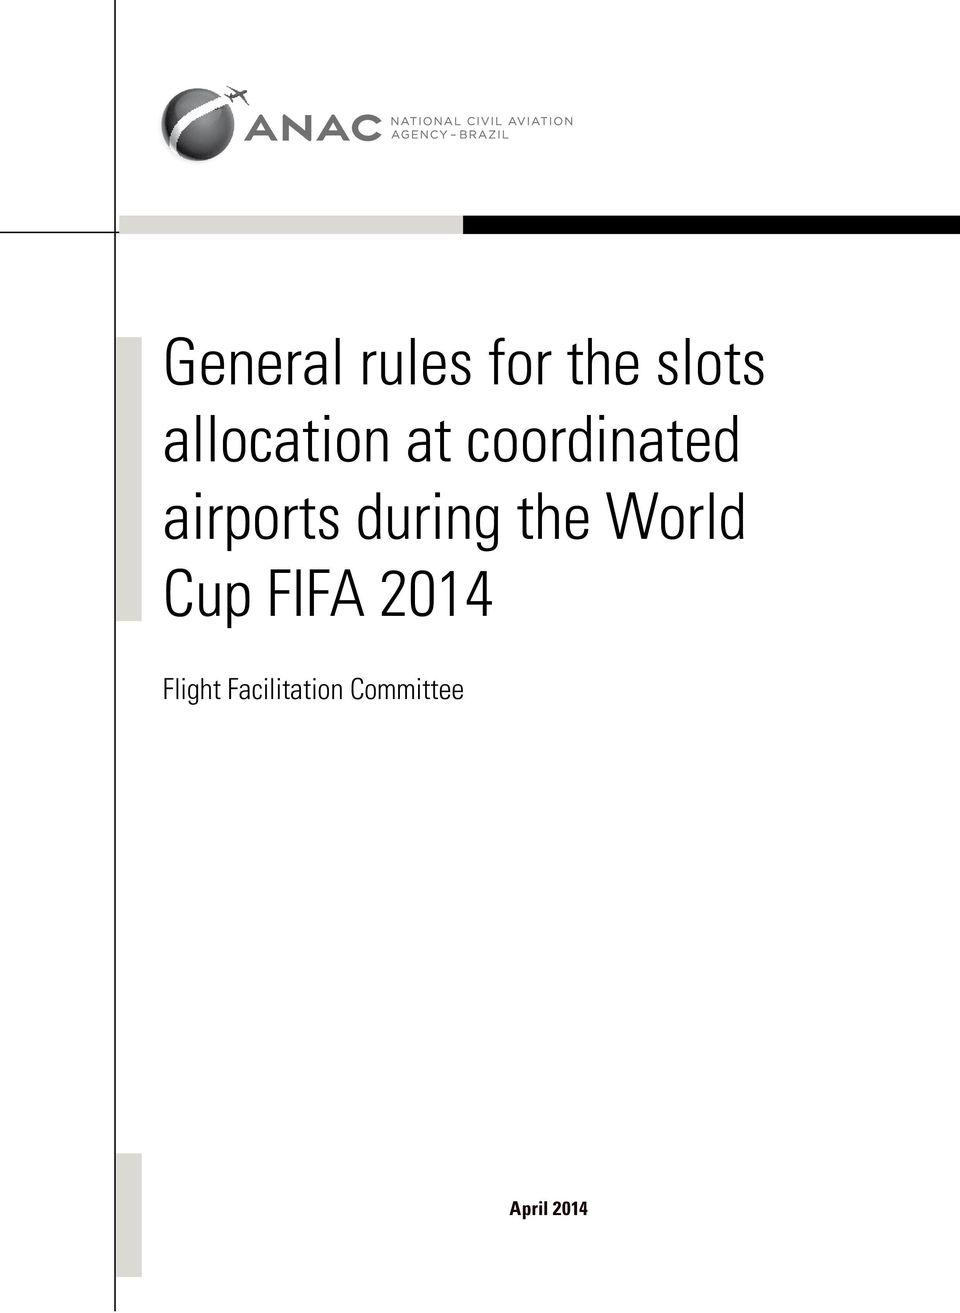 airports during the World Cup